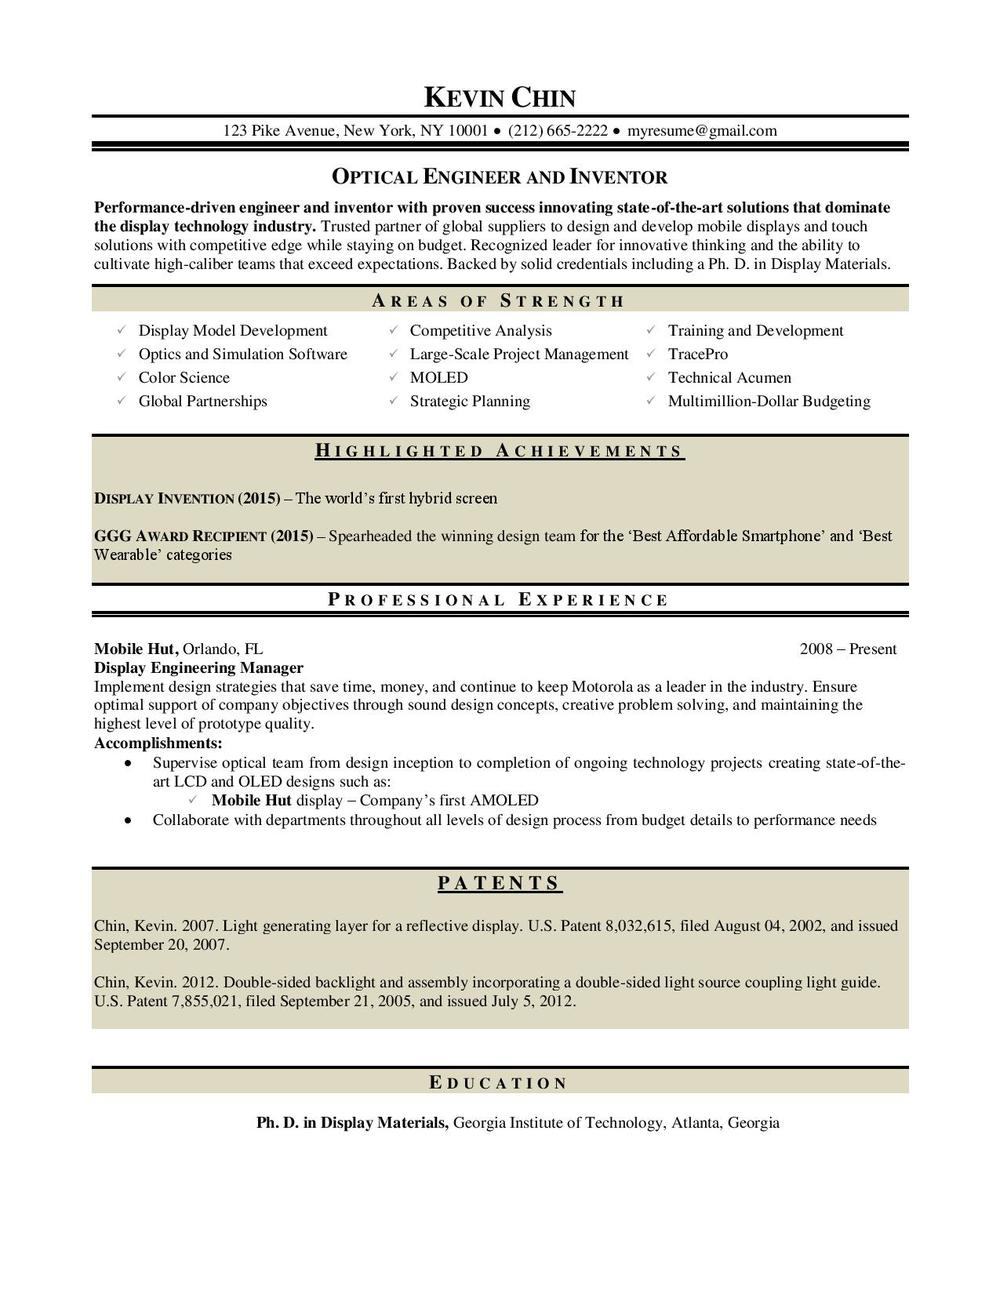 Professional Resume Service resume writers academy Professional Resume Services Jpg Resume Newbie Home